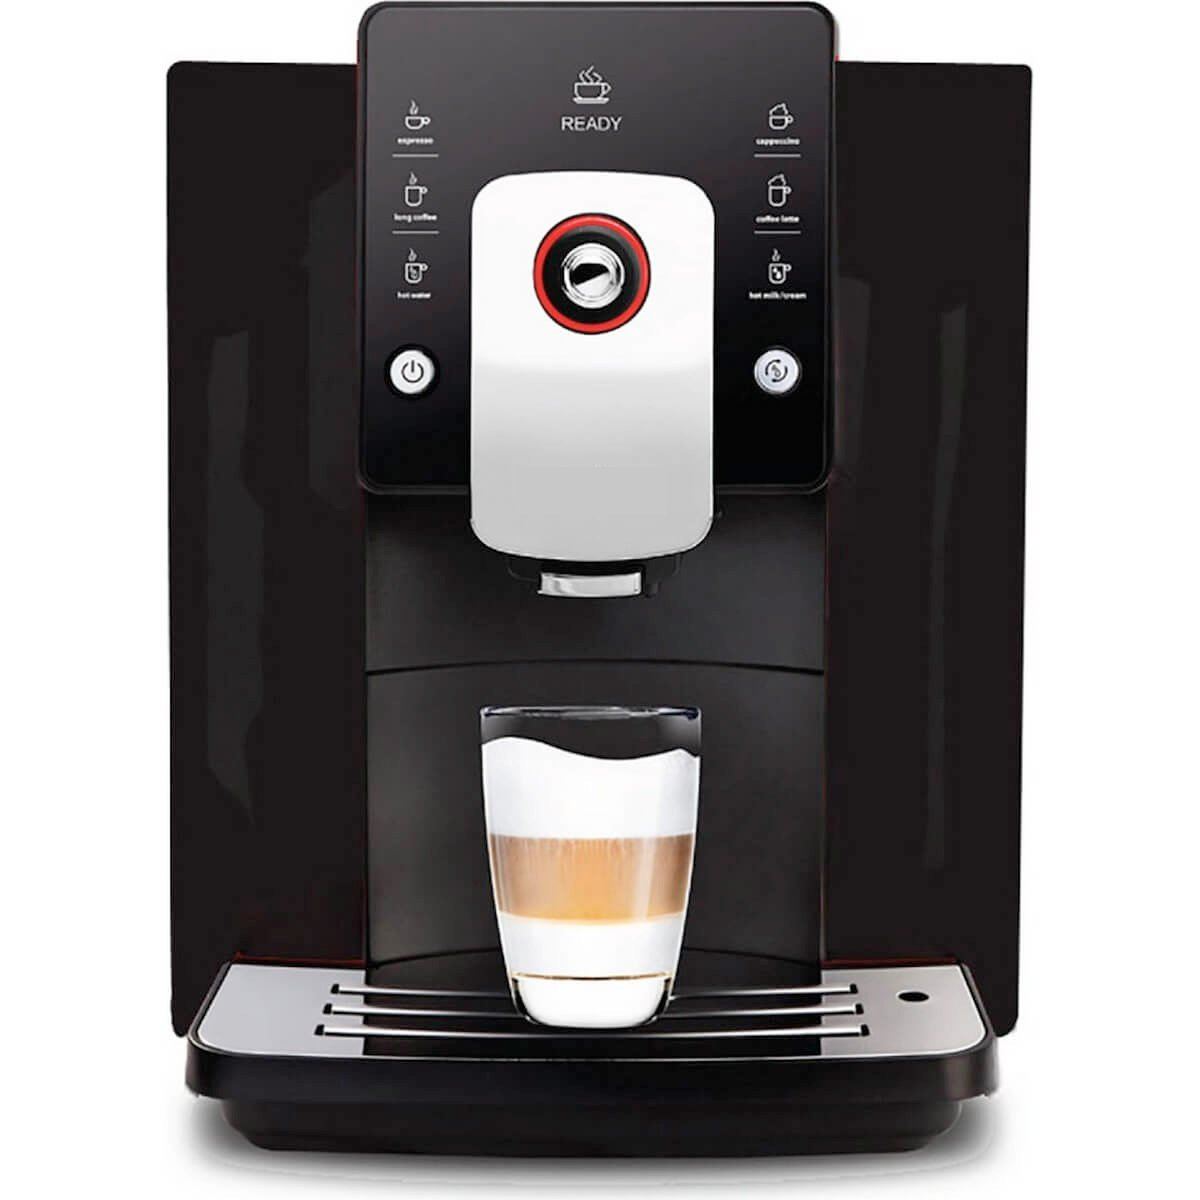 Love #coffee? Want a brand, spanking new #coffee machine for your #office? Of course you do! You could win one for FREE for 3 months – all you need to do is like or share this post to enter! Good luck   #coffeebytristanjames #win #prizedraw #coffeemachine #competition<br>http://pic.twitter.com/XVk4mIiWuU